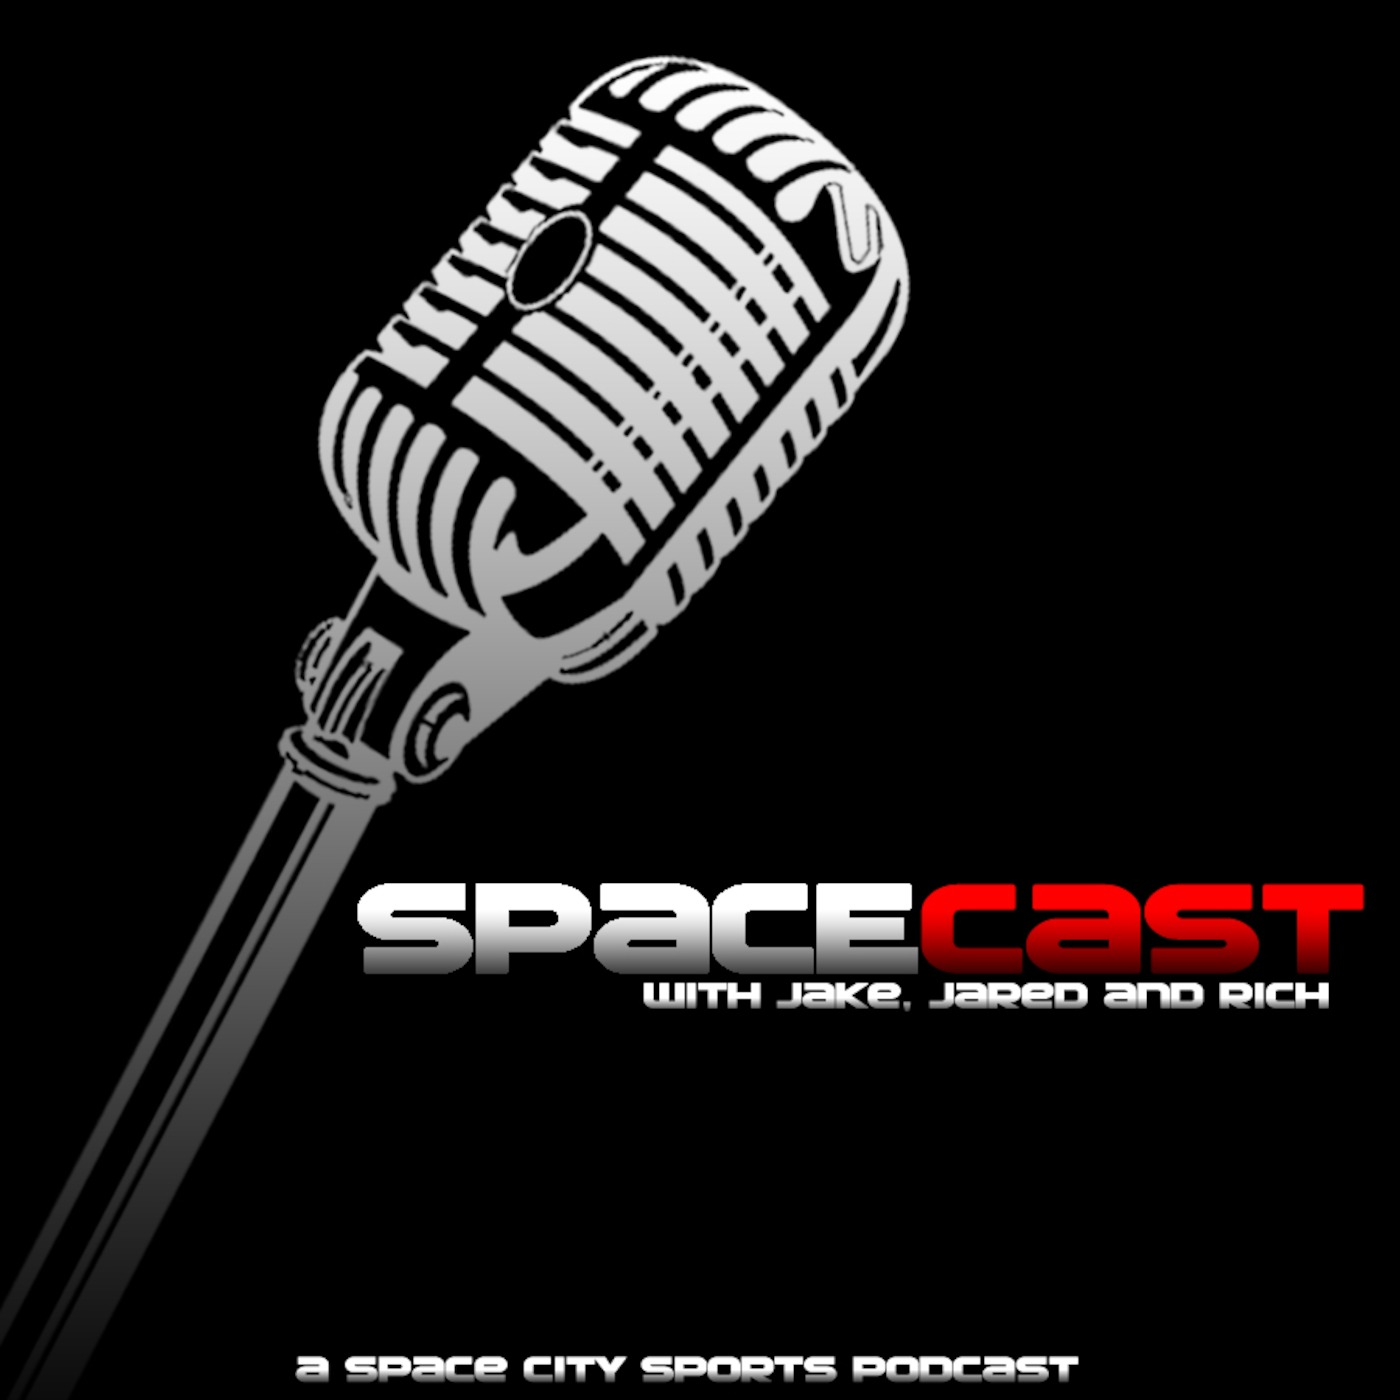 Space City SportsCast